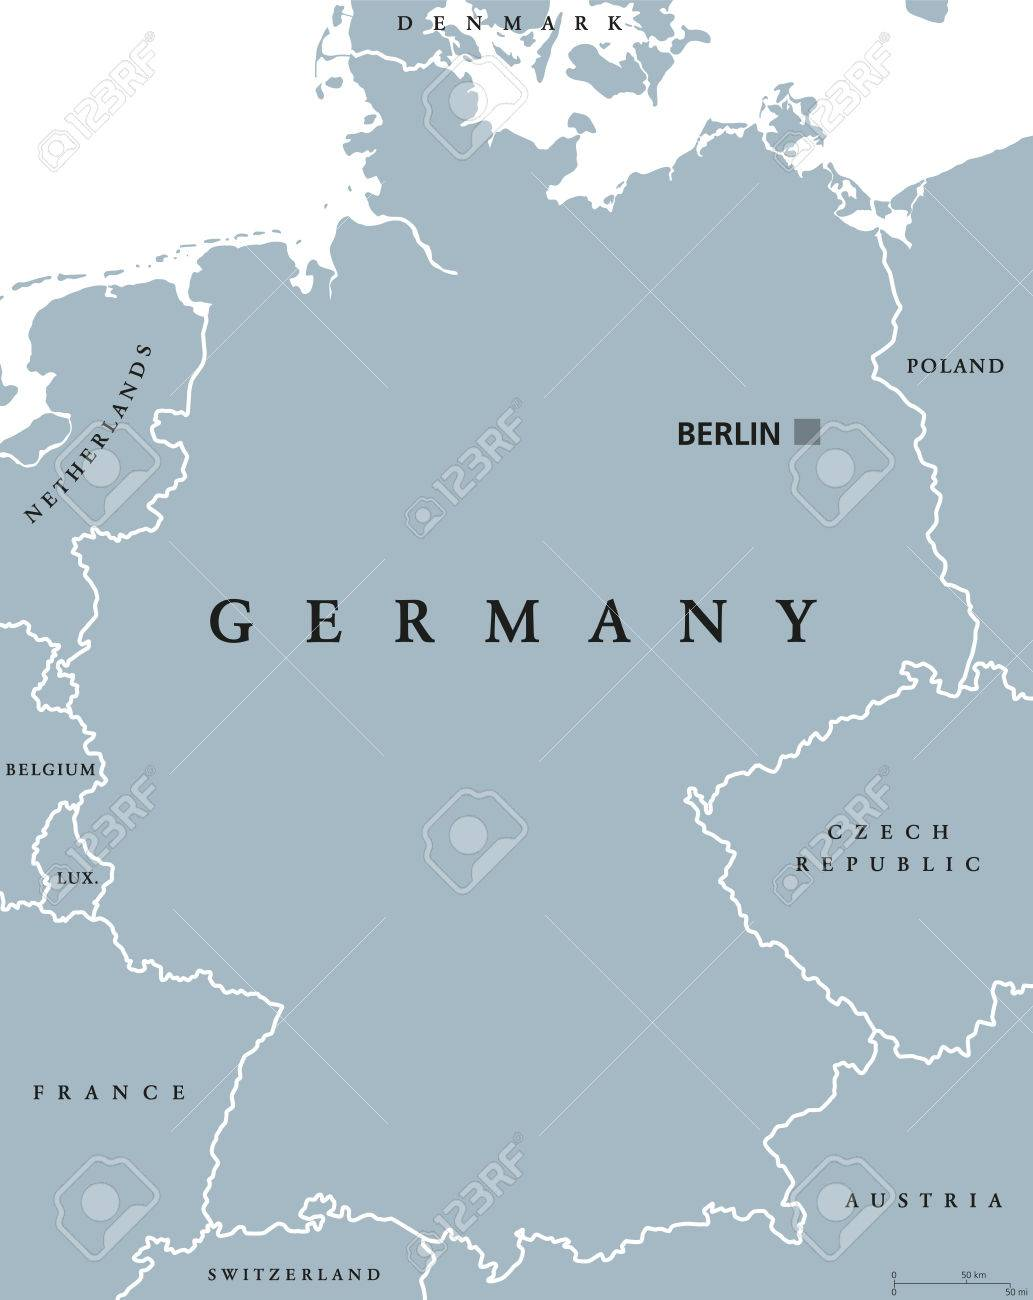 Capital Of Germany Map.Germany Political Map With Capital Berlin National Borders And